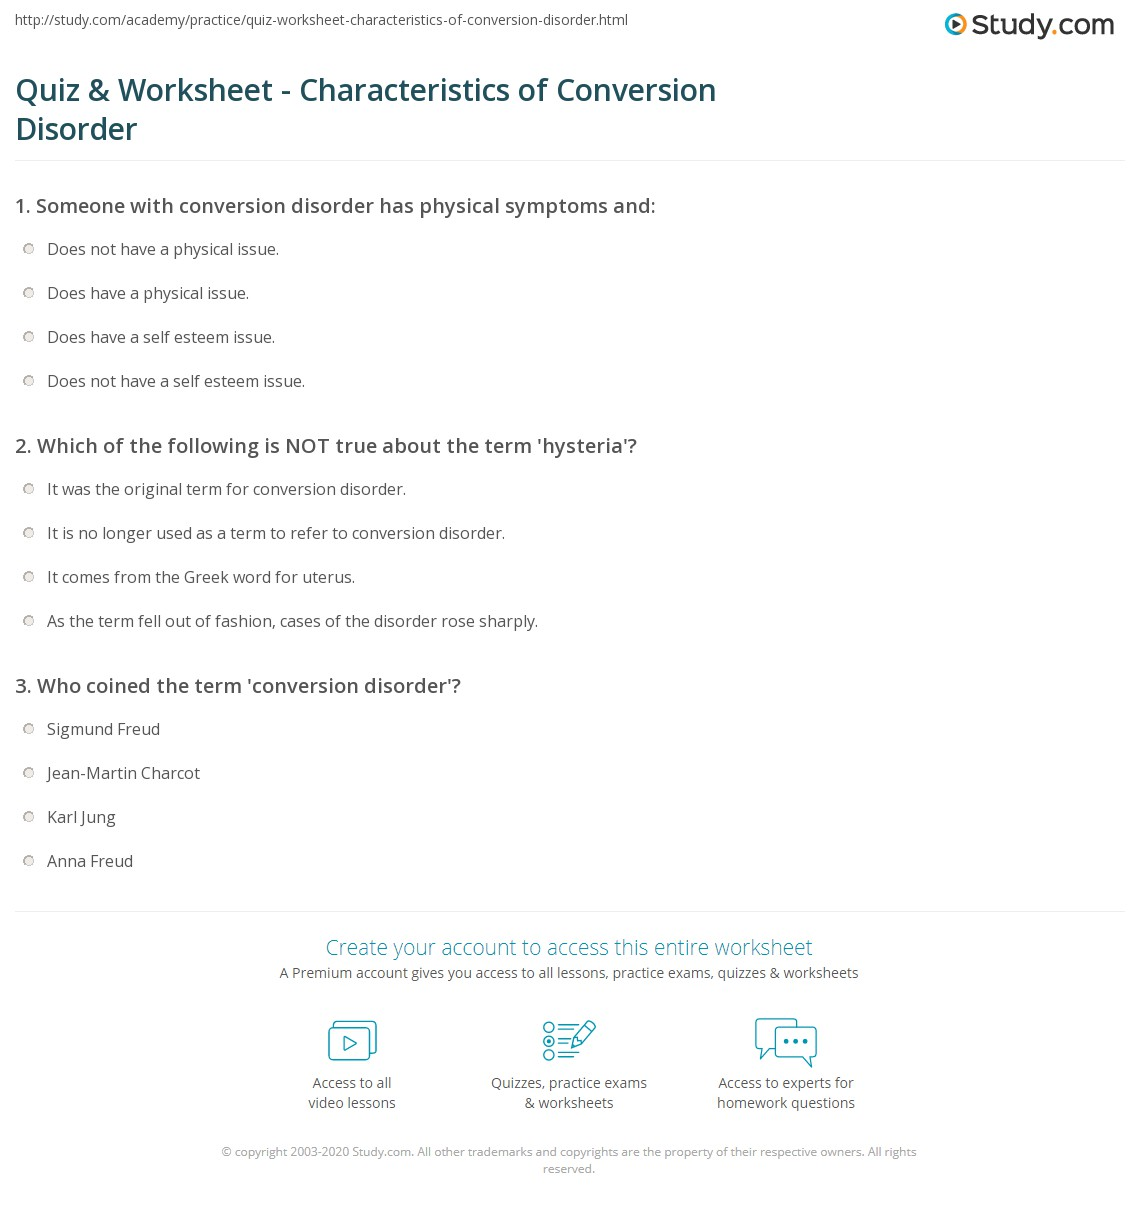 quiz & worksheet - characteristics of conversion disorder | study